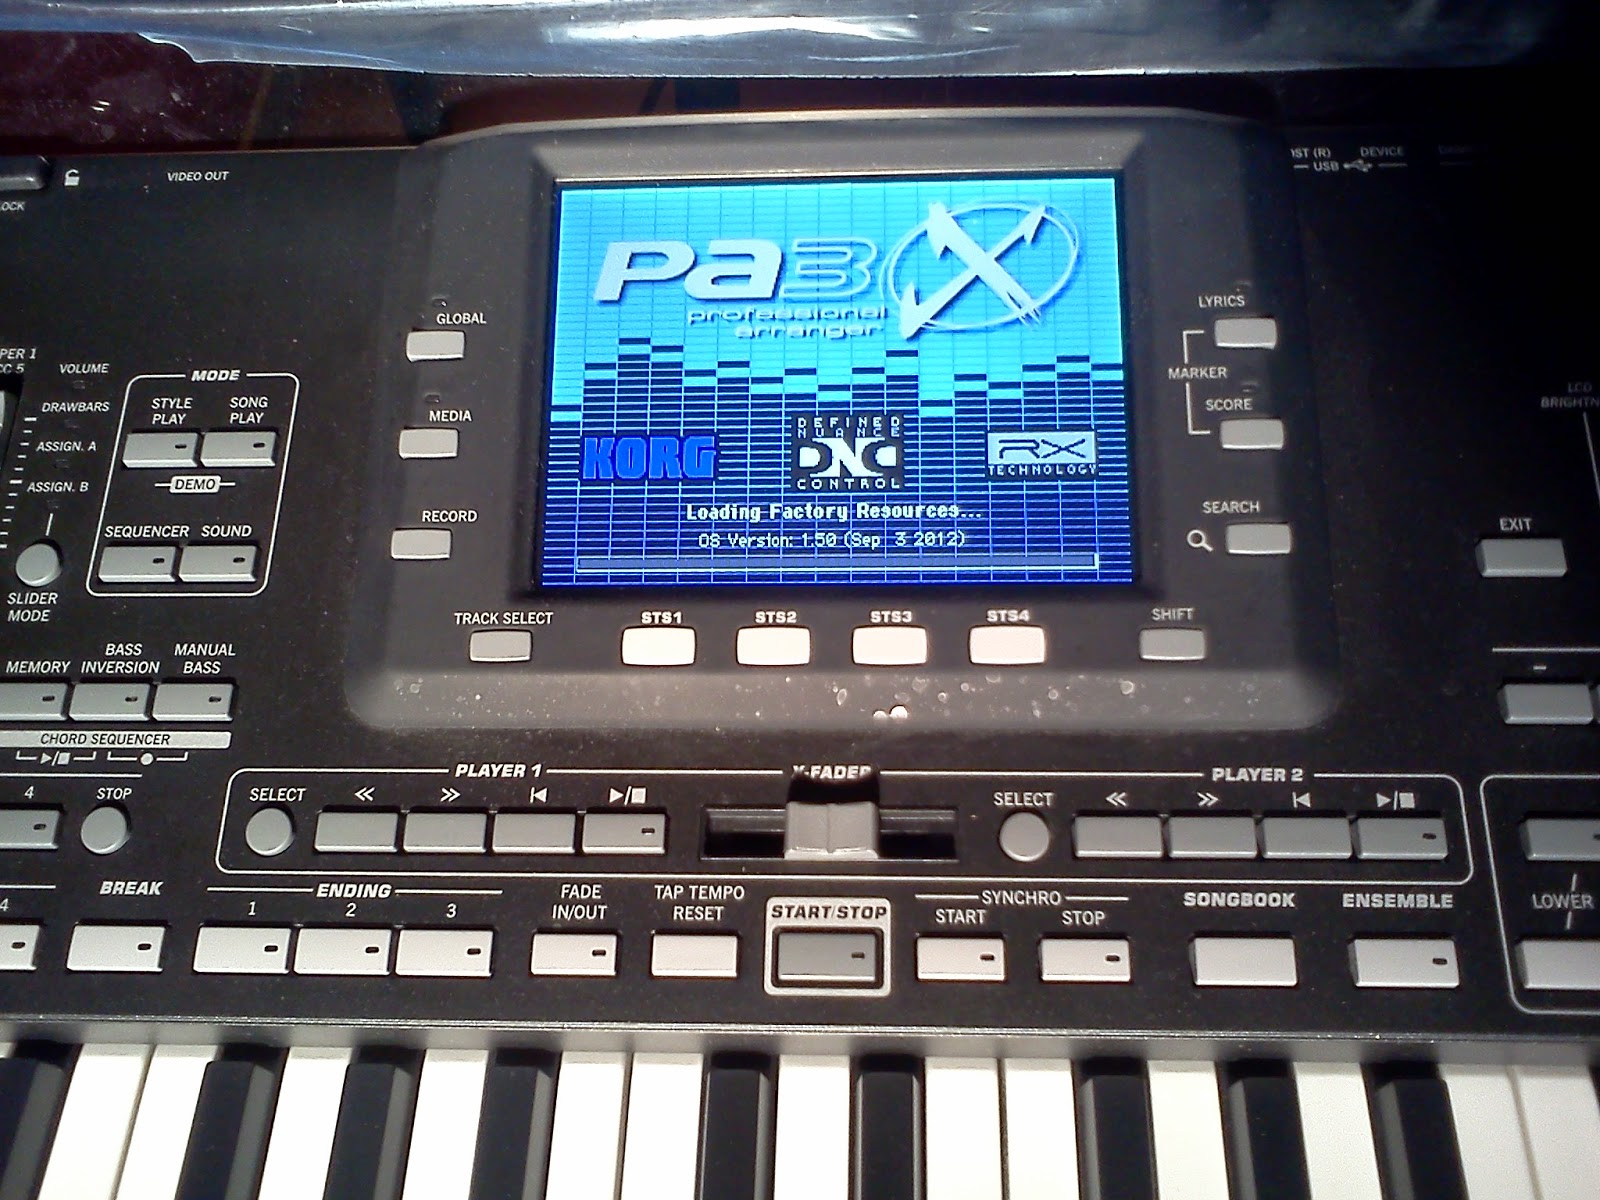 Download Set Korg pa1x